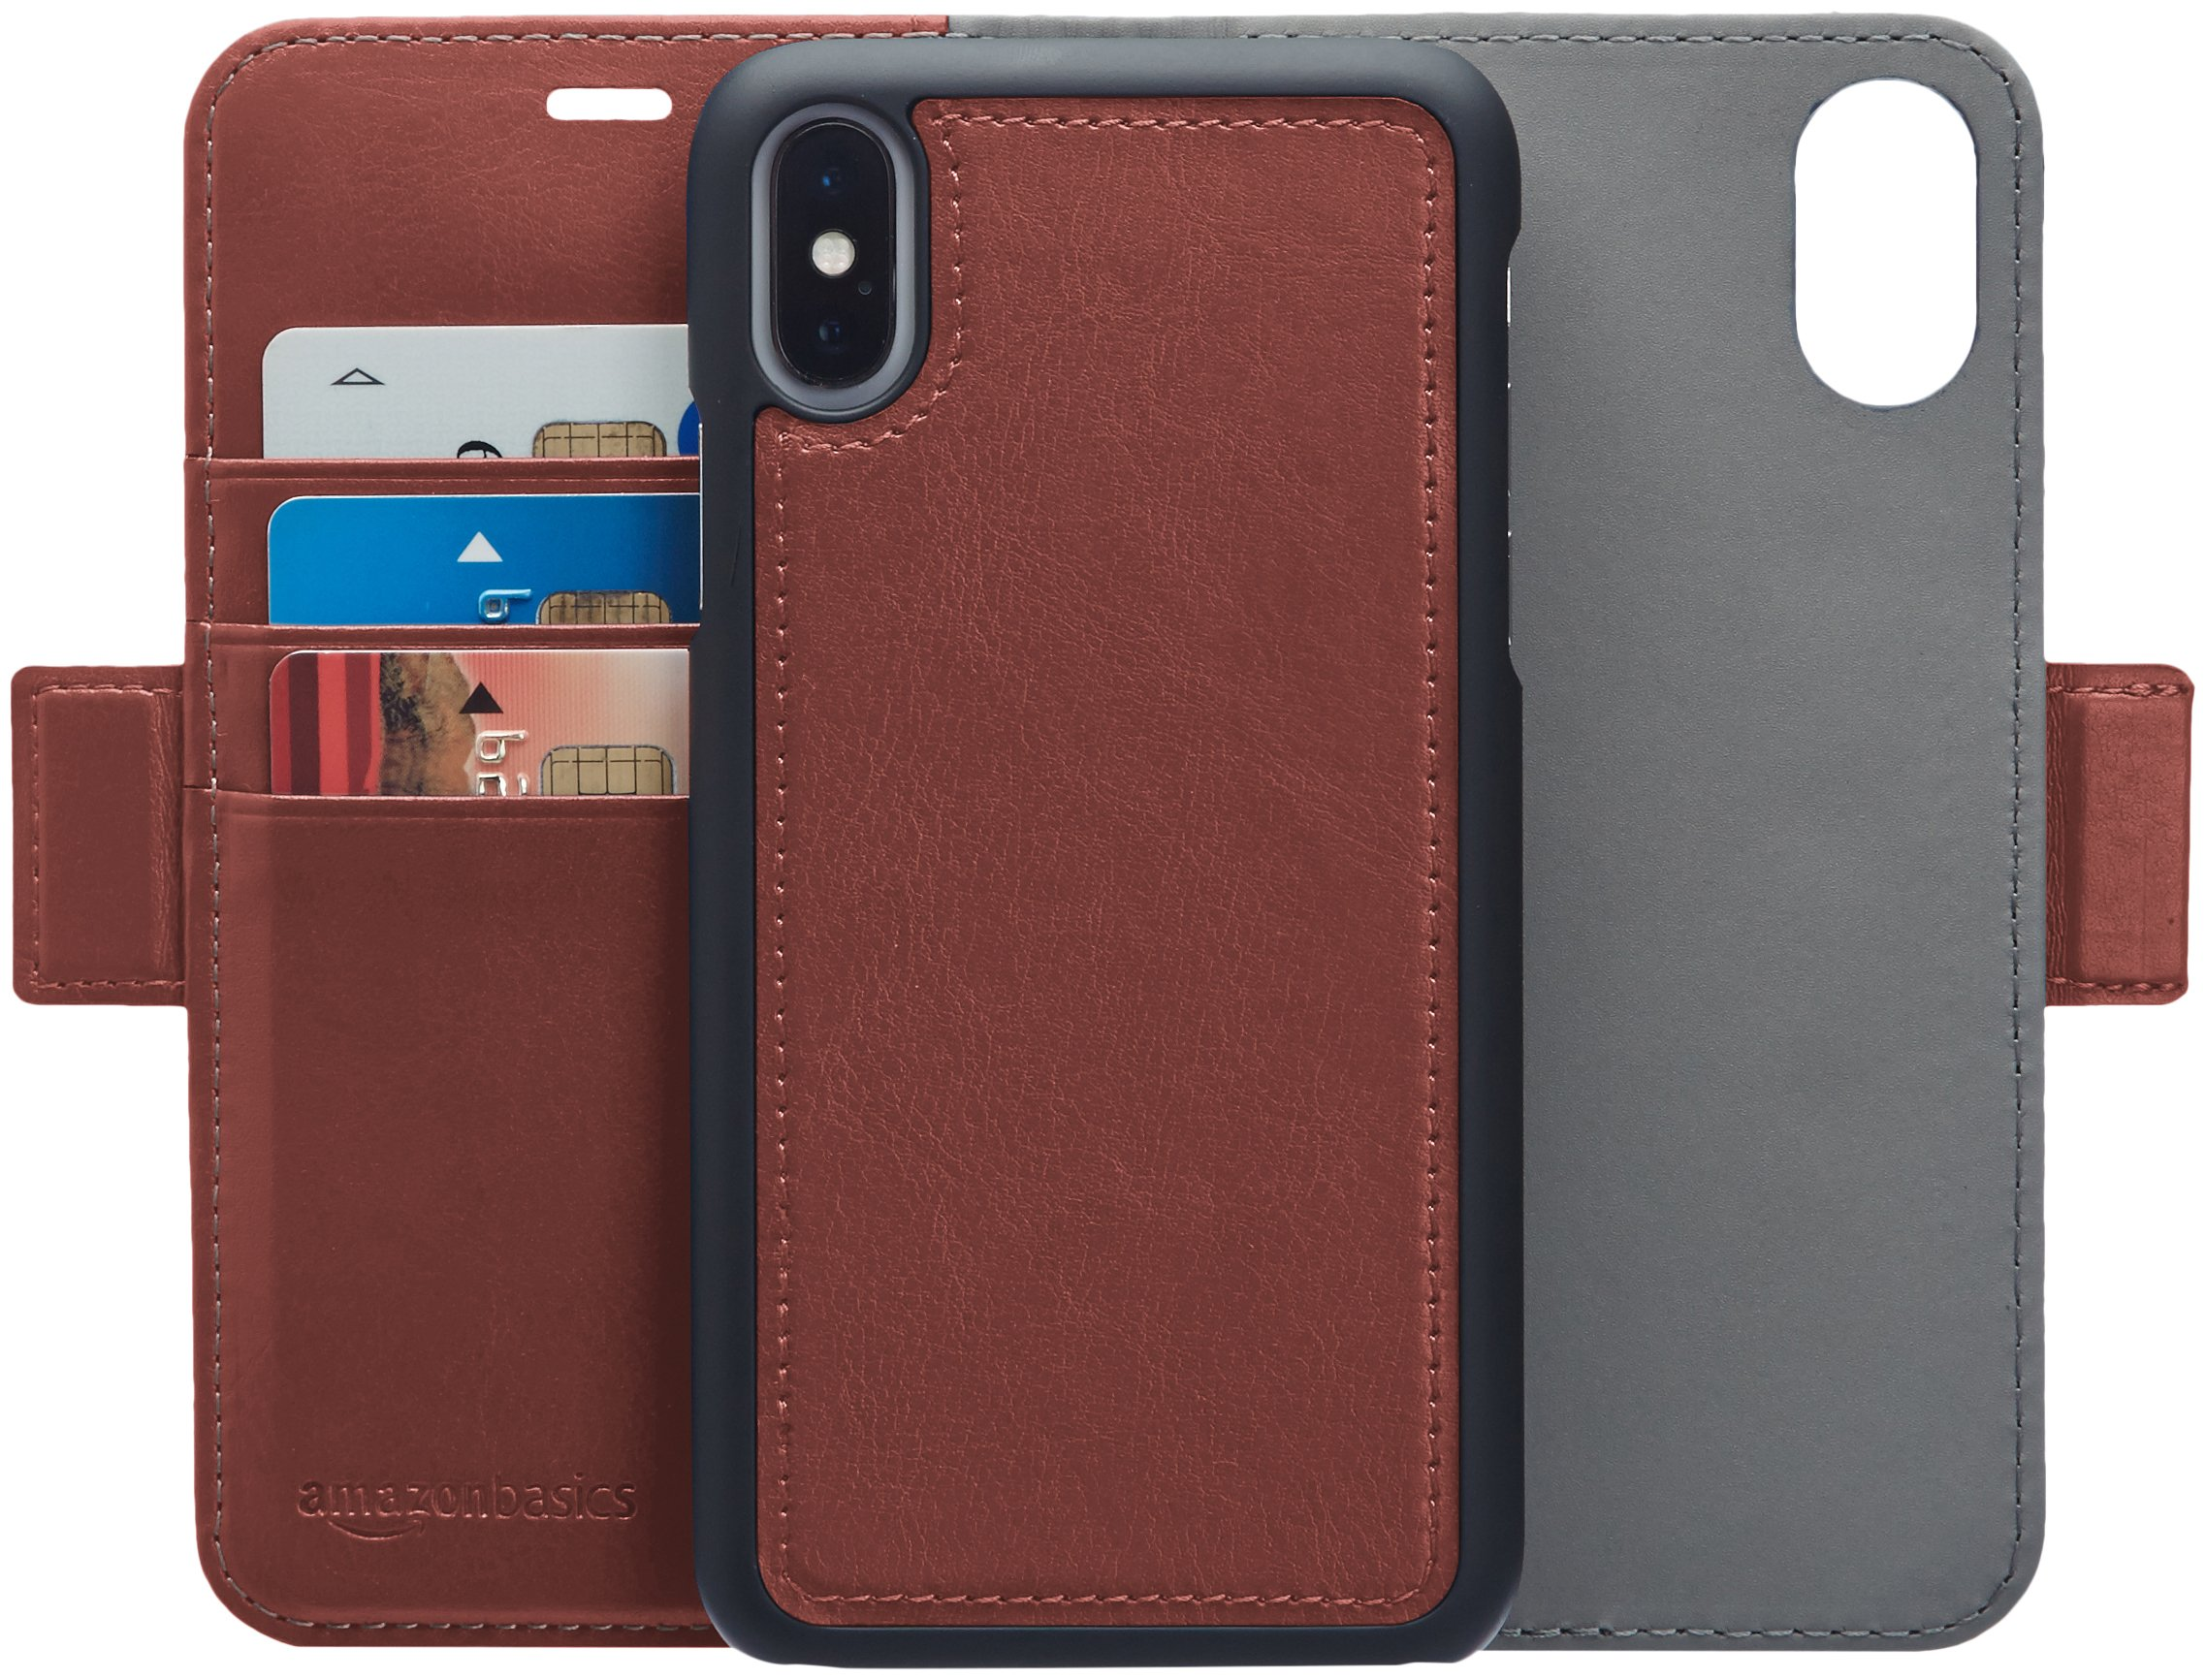 AmazonBasics iPhone X PU Leather Wallet Detachable Case, Dark Brown by AmazonBasics (Image #1)